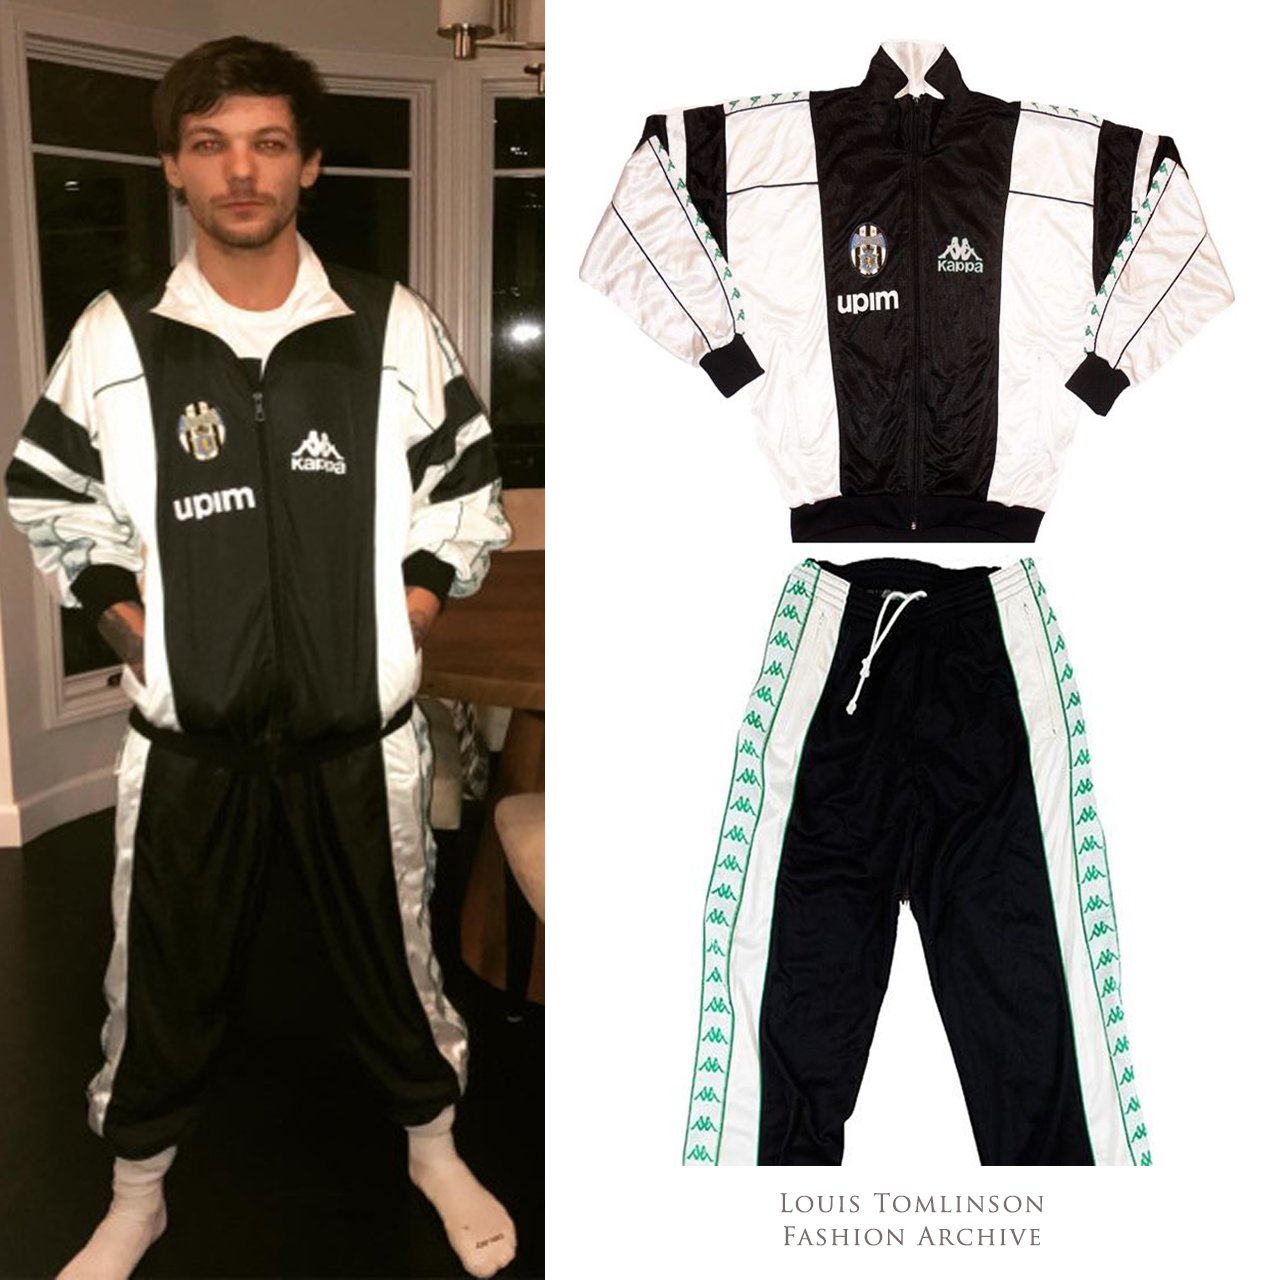 Louis T Fashion On Twitter Louis Wore A Vintage Kappa Juventus Tracksuit Seasons 1990 1992 On